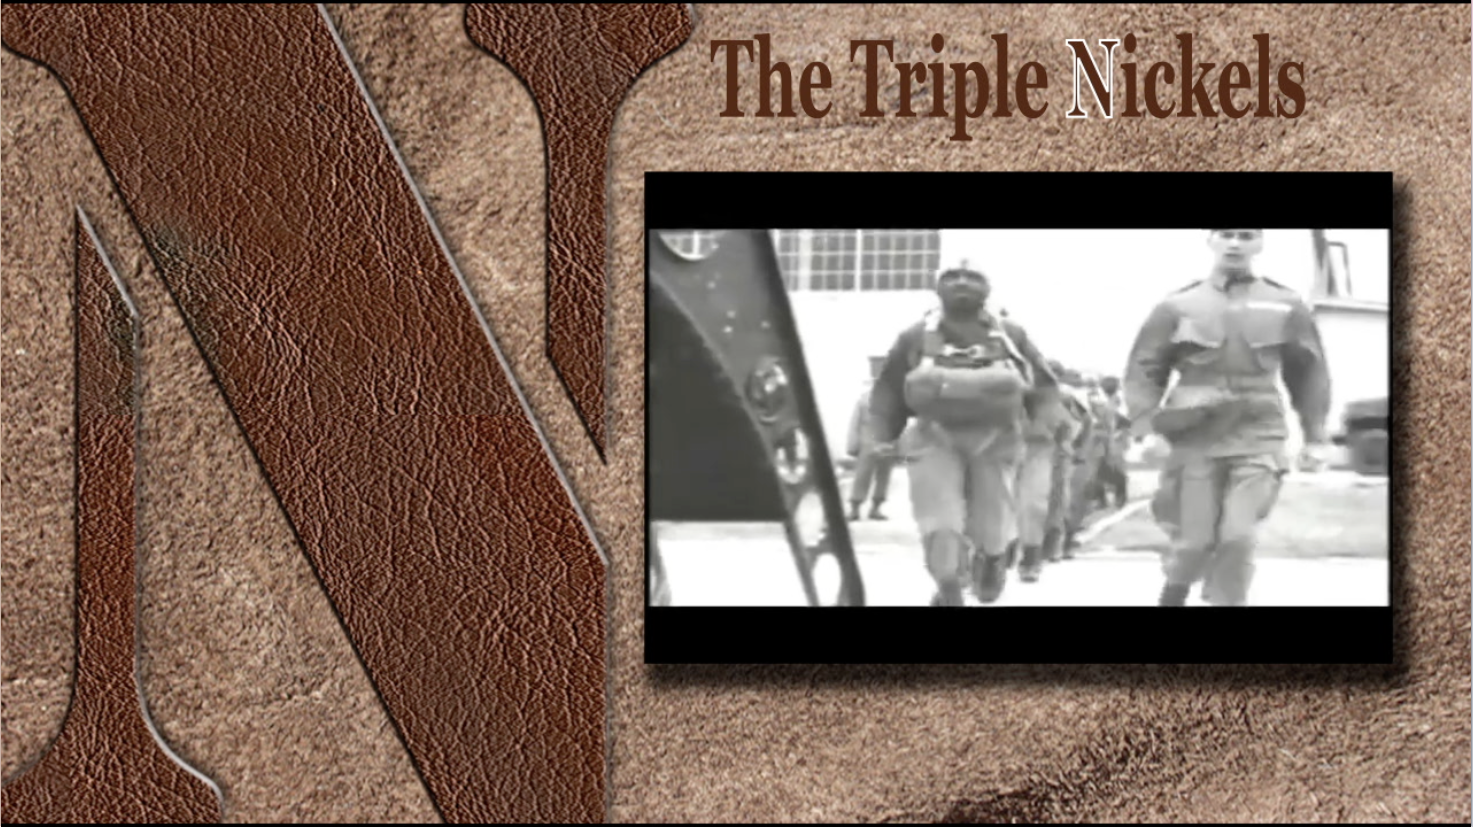 The 555th Parachute Infantry Battalion, nicknamed The Triple Nickles, was an all-black airborne unit of the United States Army during World War II.